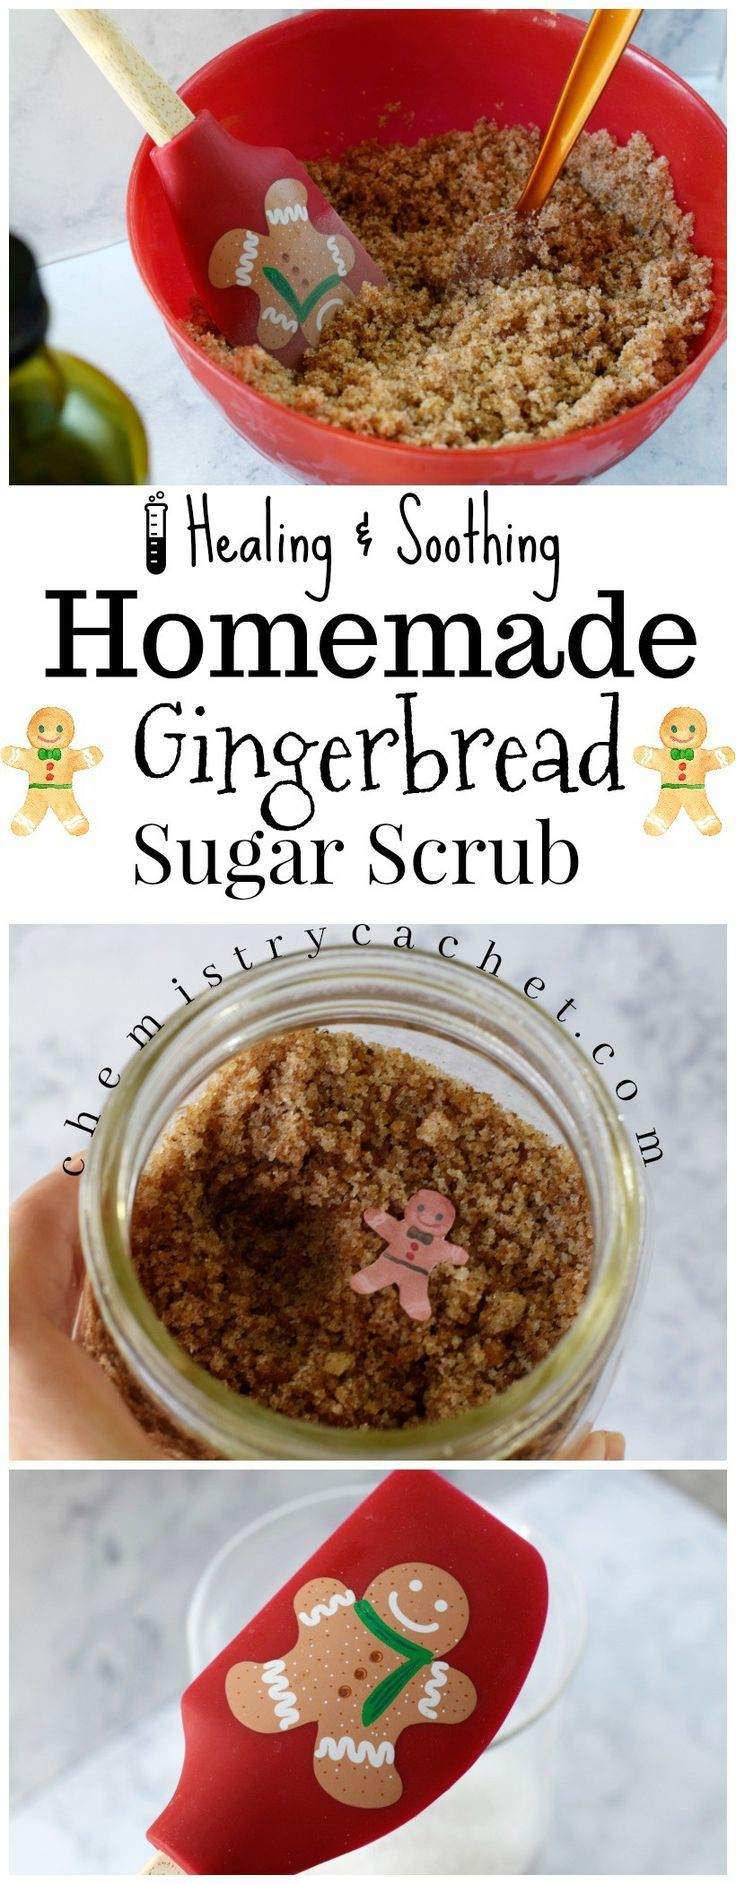 Healing, Soothing Homemade Gingerbread Sugar Scrub perfect for gifts! Not your t...